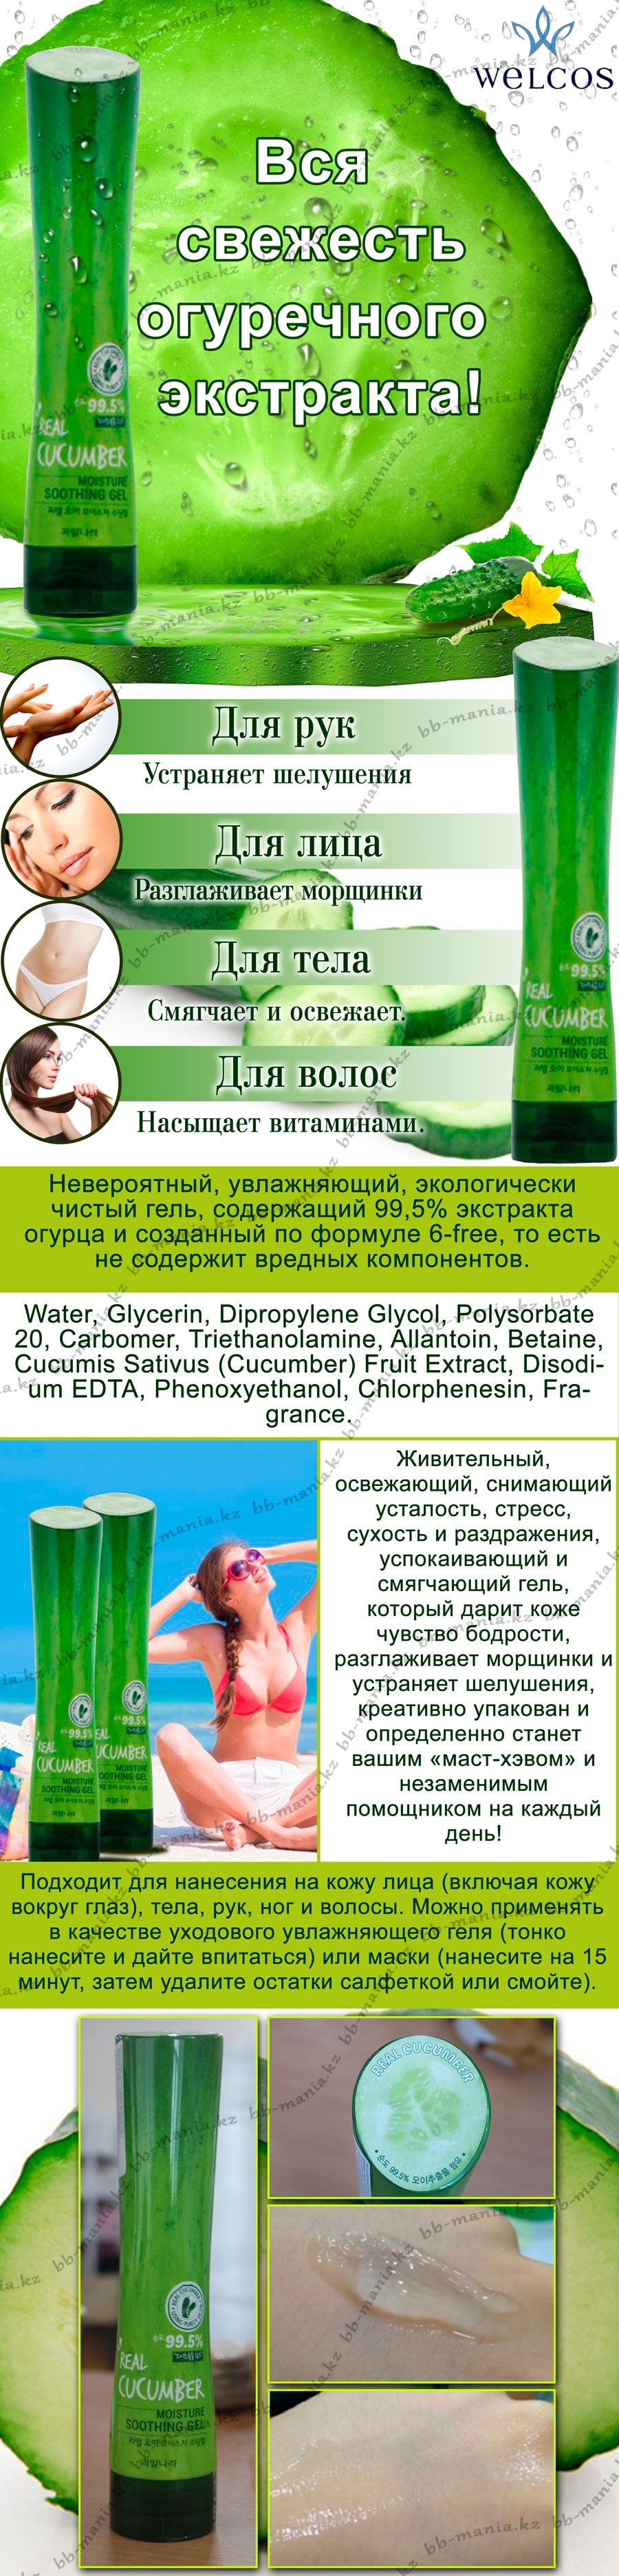 Real-Cucumber-Moisture-Soothing-Gel-[Welcos]-min